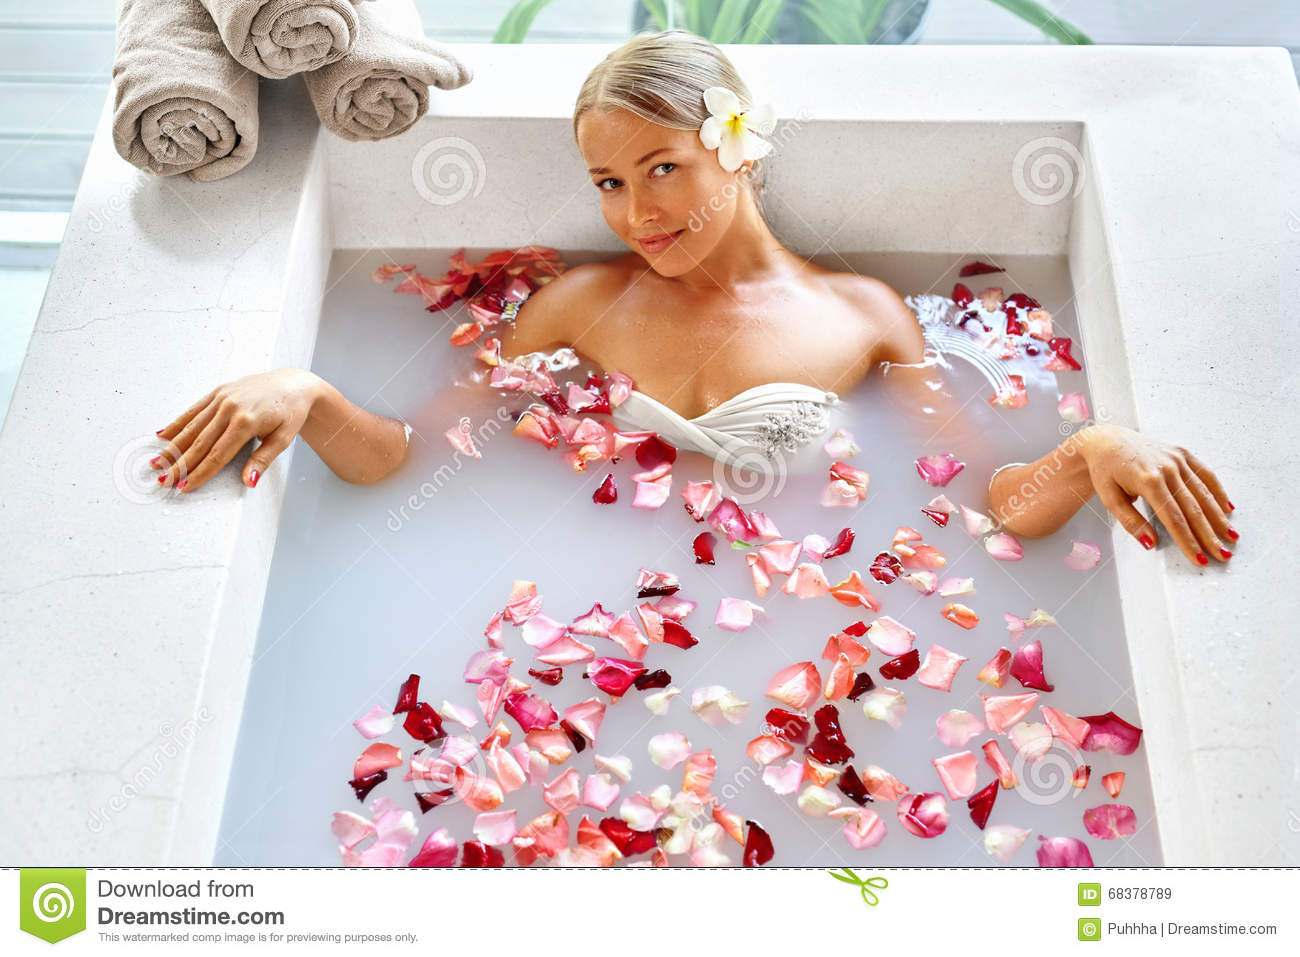 Salon Erotic Woman Spa Flower Bath Aromatherapy Relaxing Rose Bathtub